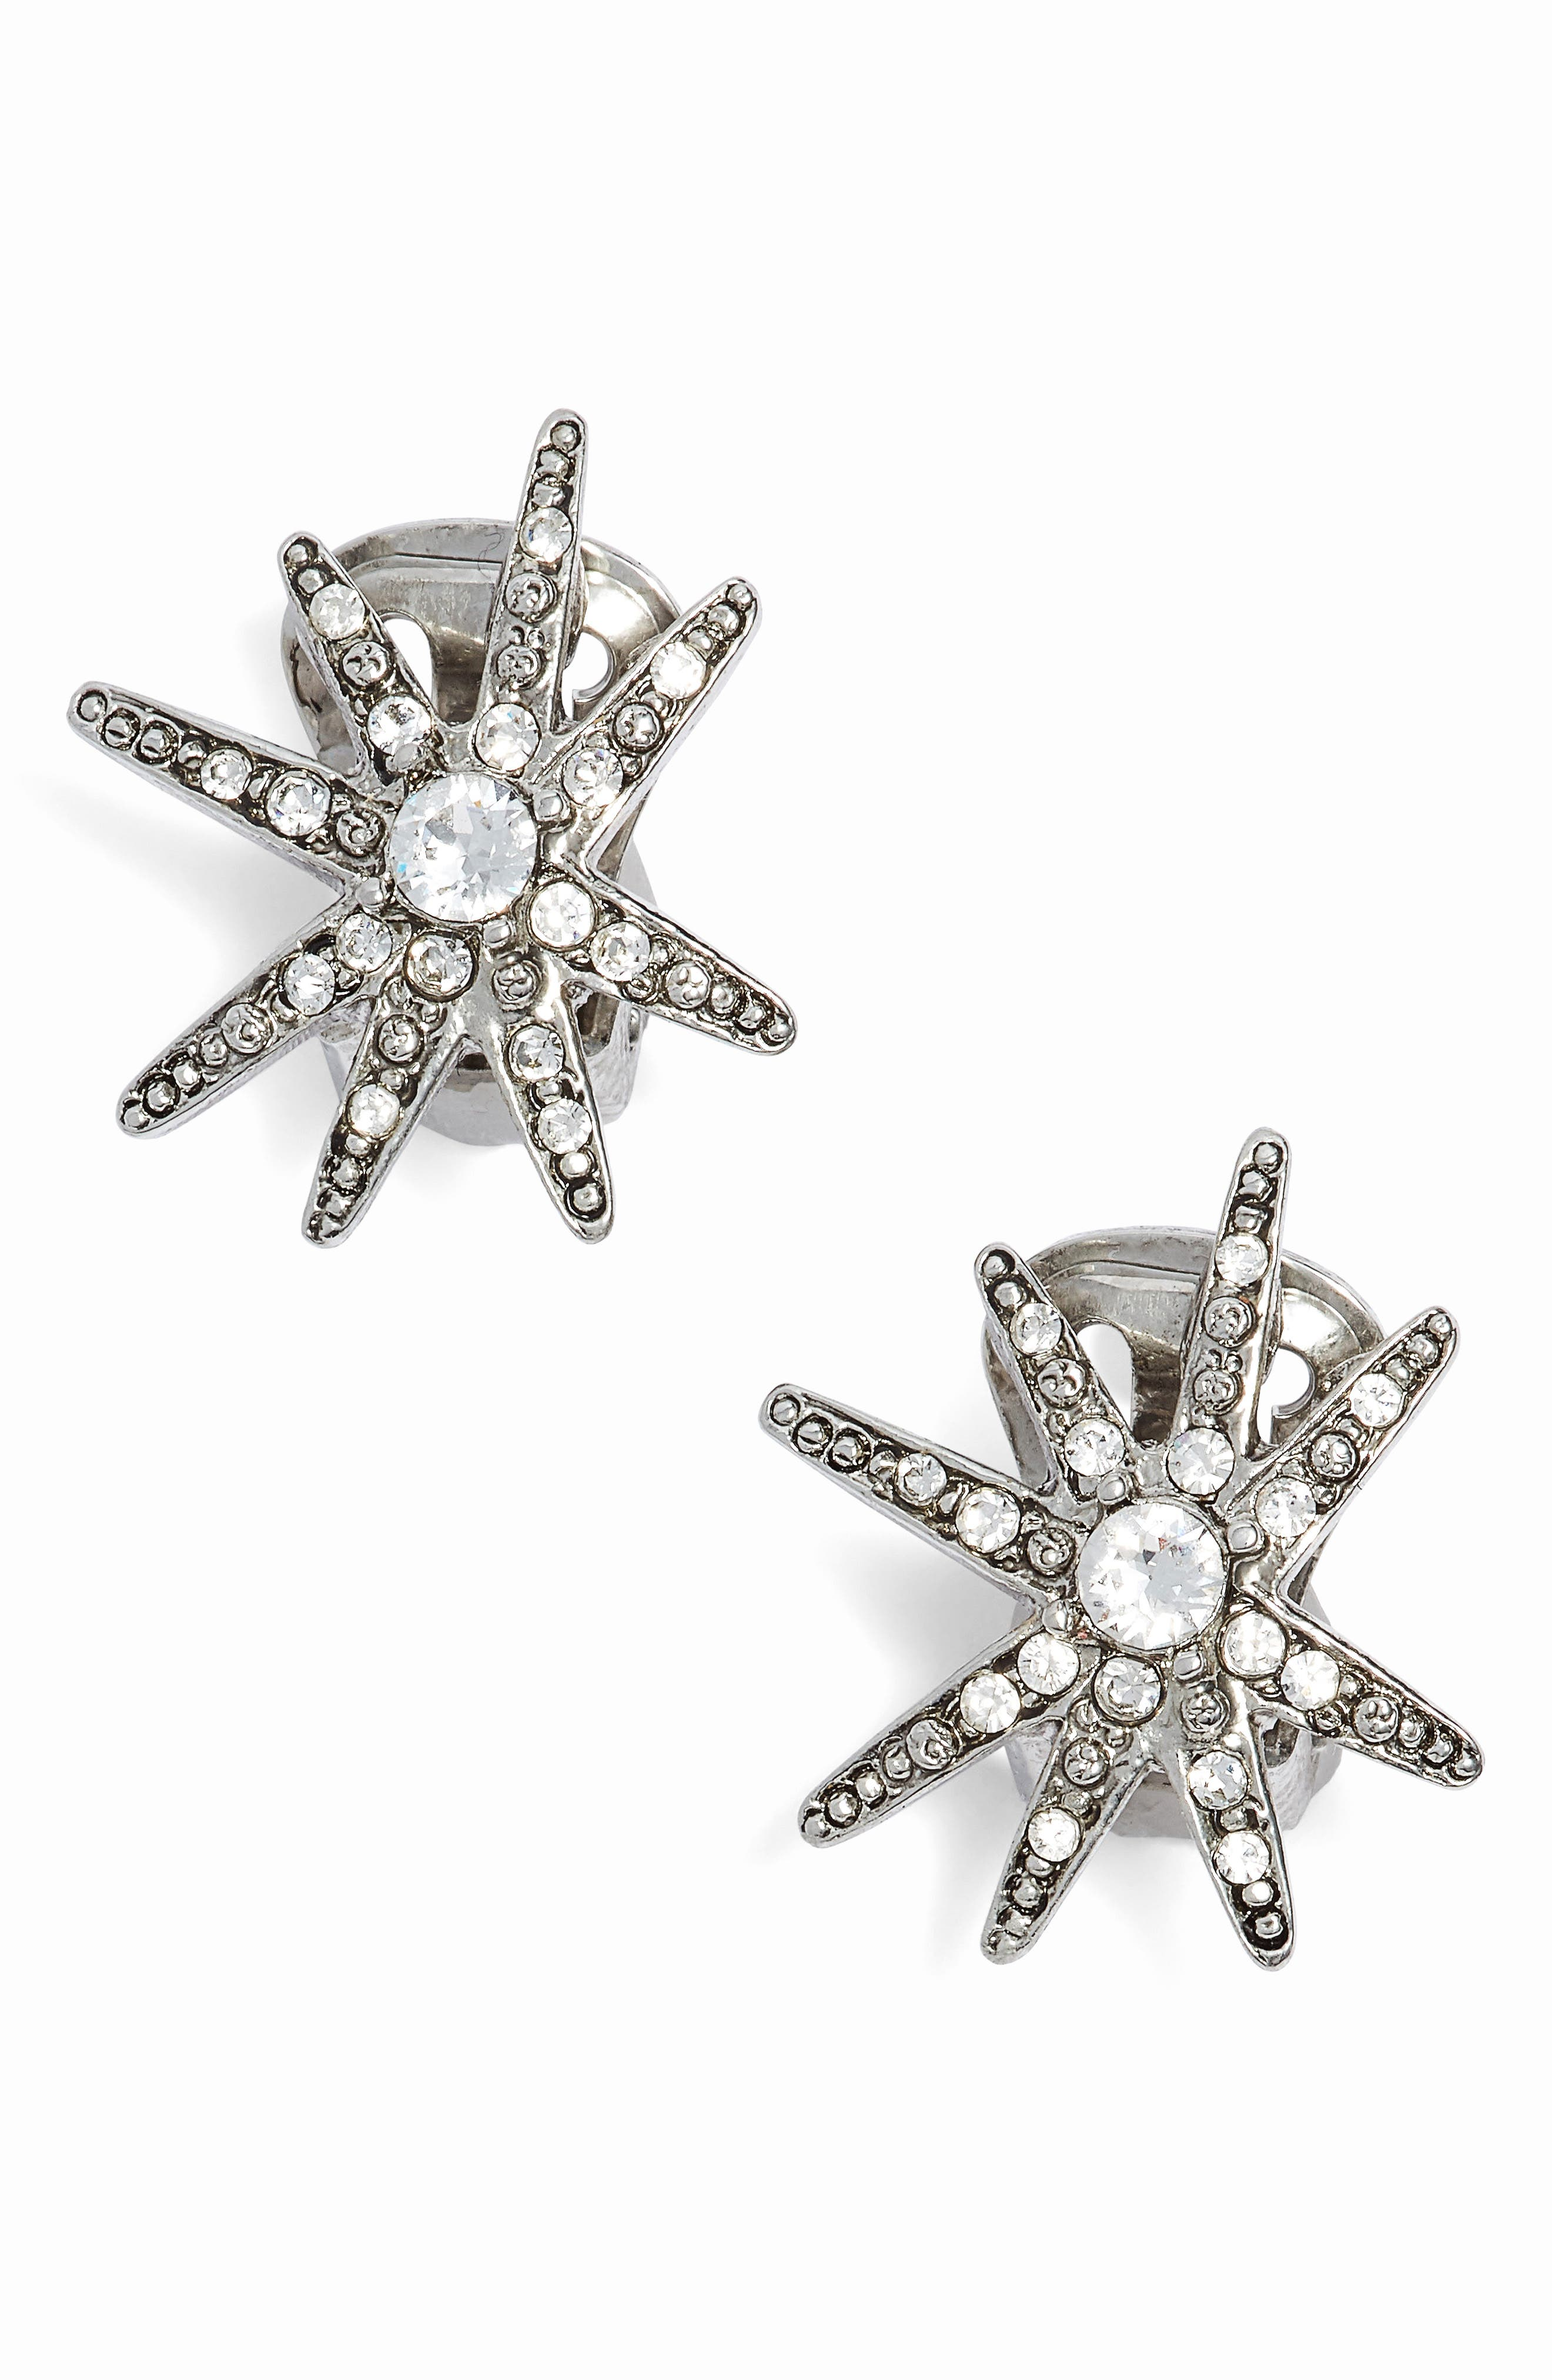 Crystal Fireworks Stud Earrings,                             Main thumbnail 1, color,                             Crystal Shade / Silver